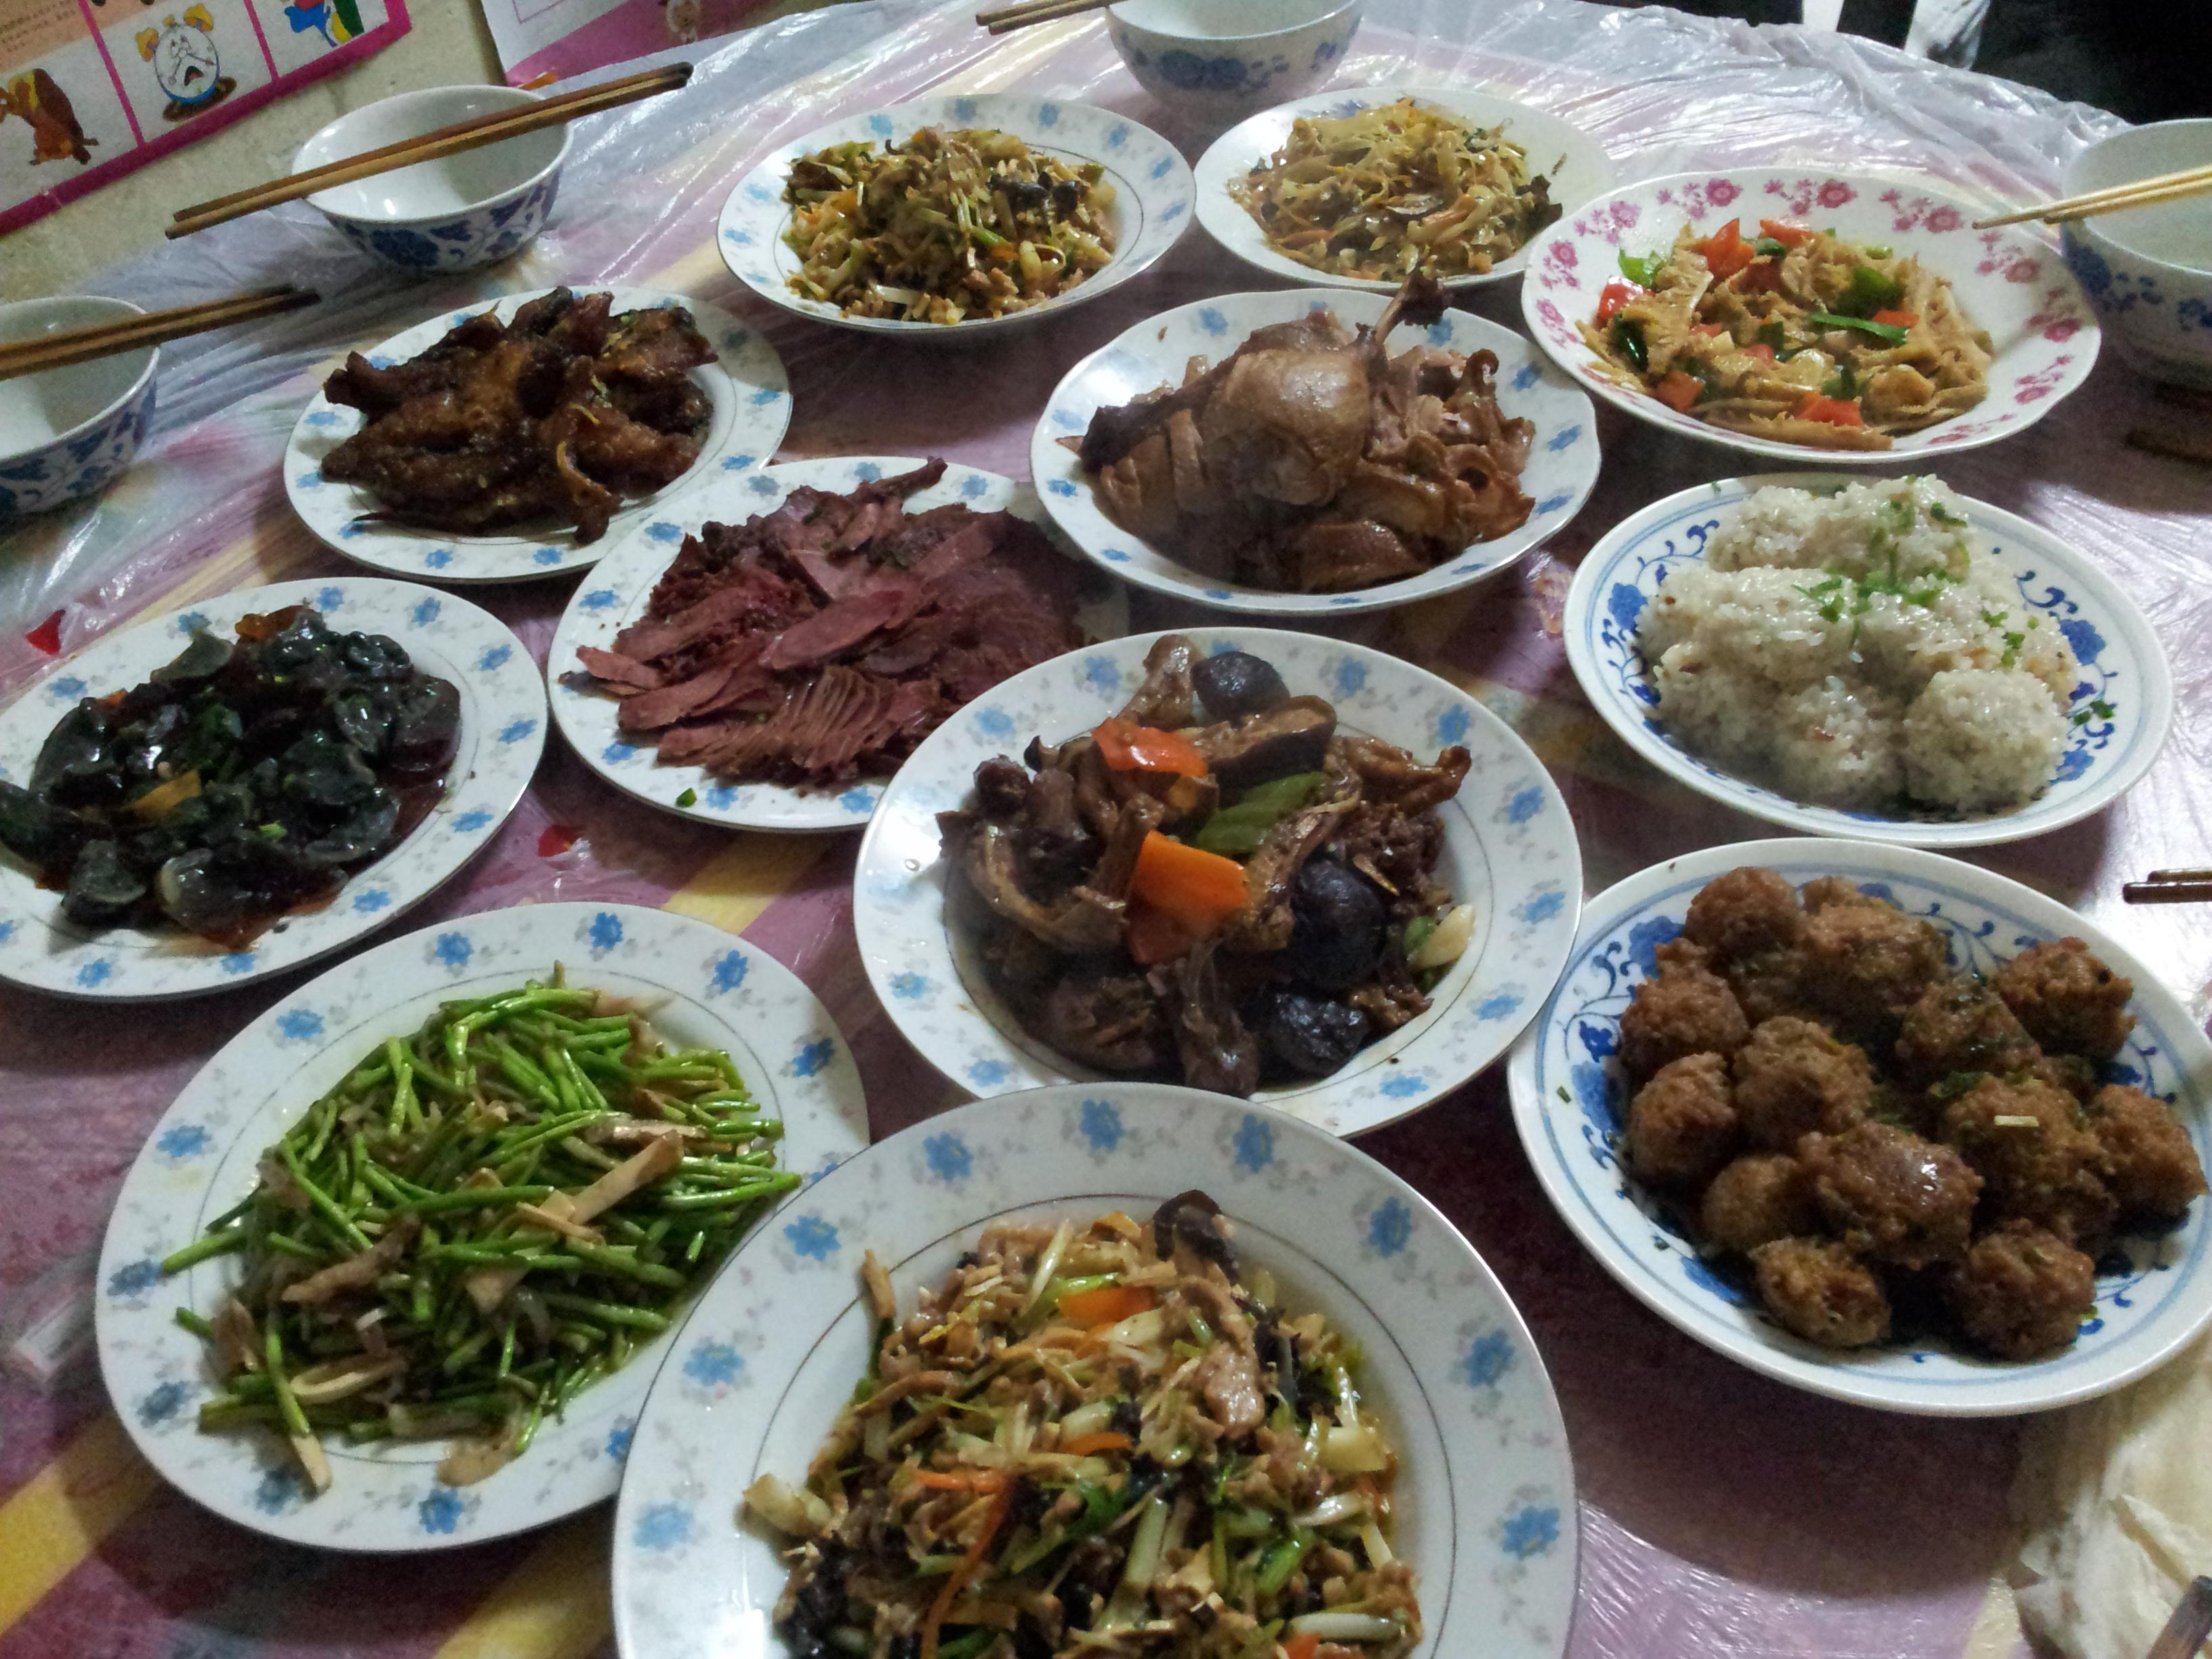 Dishes prepared by my wife for the family reunion dinner